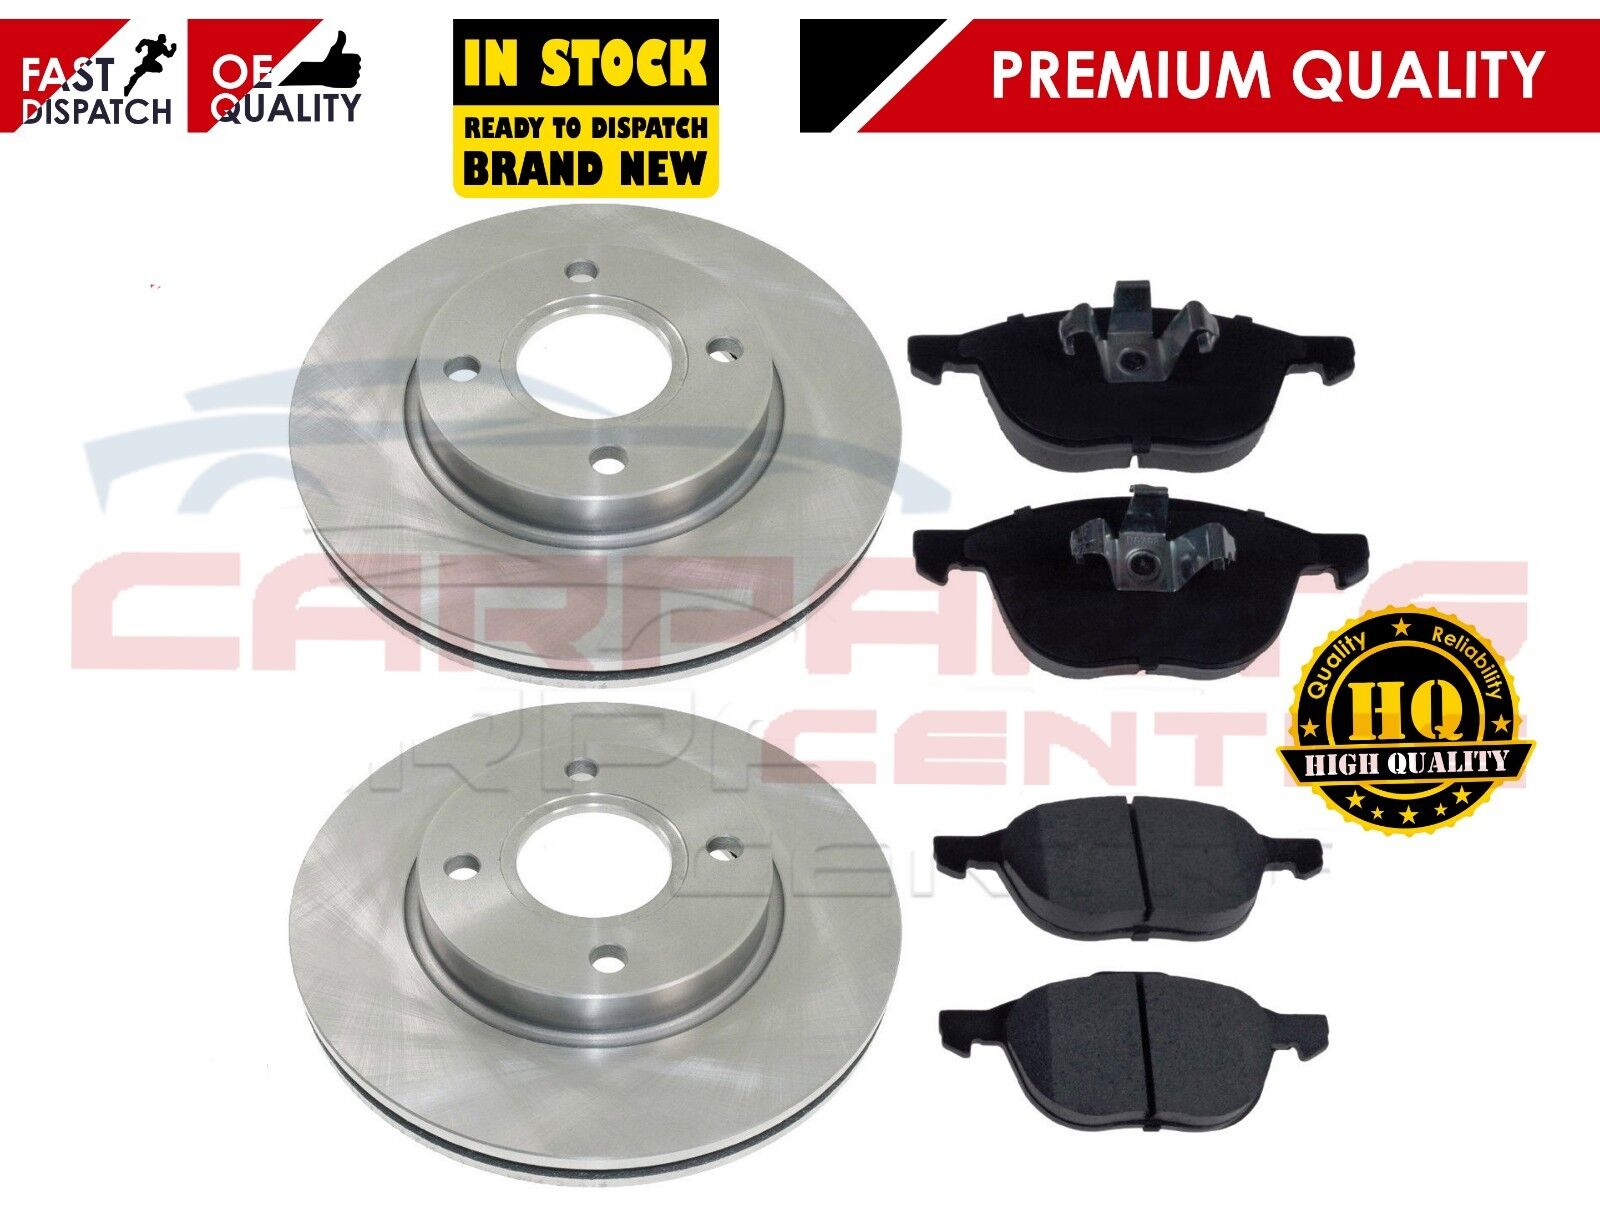 Branded Front Brake Pads Ford Focus and C-Max 03 on